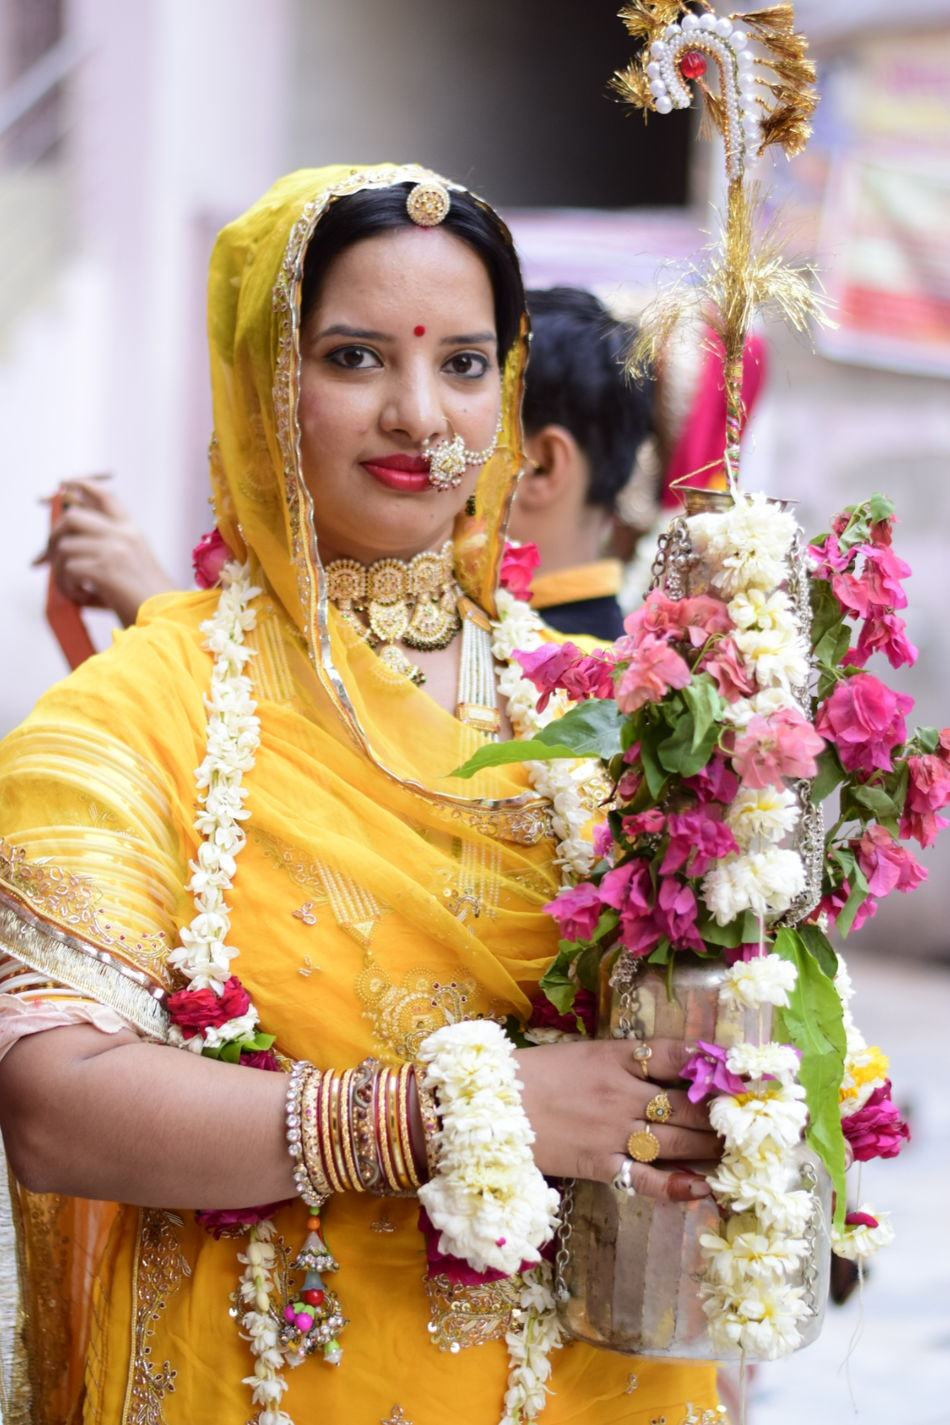 Women Who Inspire You Localphotography Streetphotography Local Culture Local Festival Jodhpur Rajasthan Rajasthandiaries